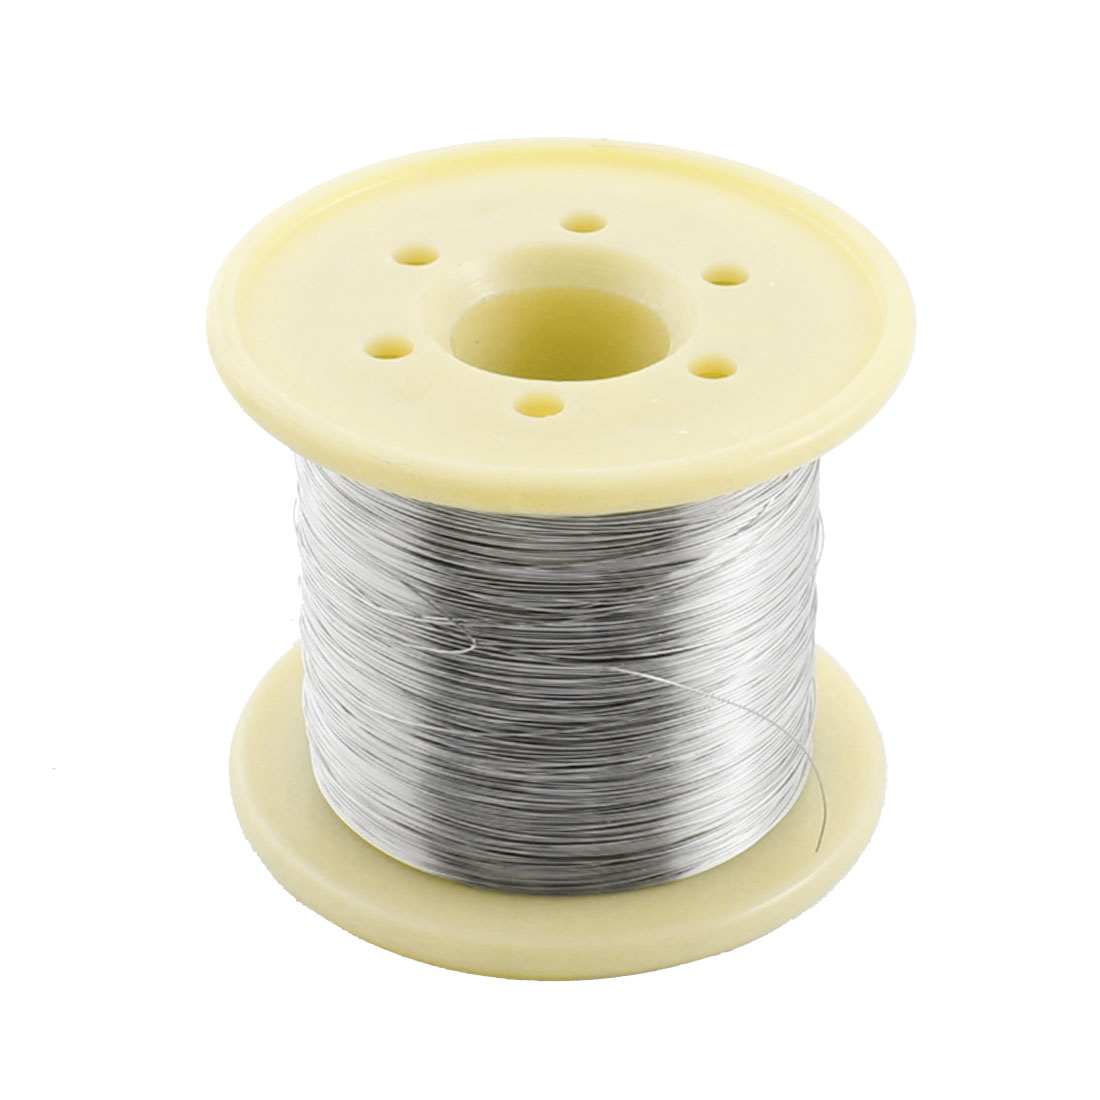 100meter 330ft Length 0.2mm AWG32 Nichrome Resistance Heating Coils Resistor Wire Cable